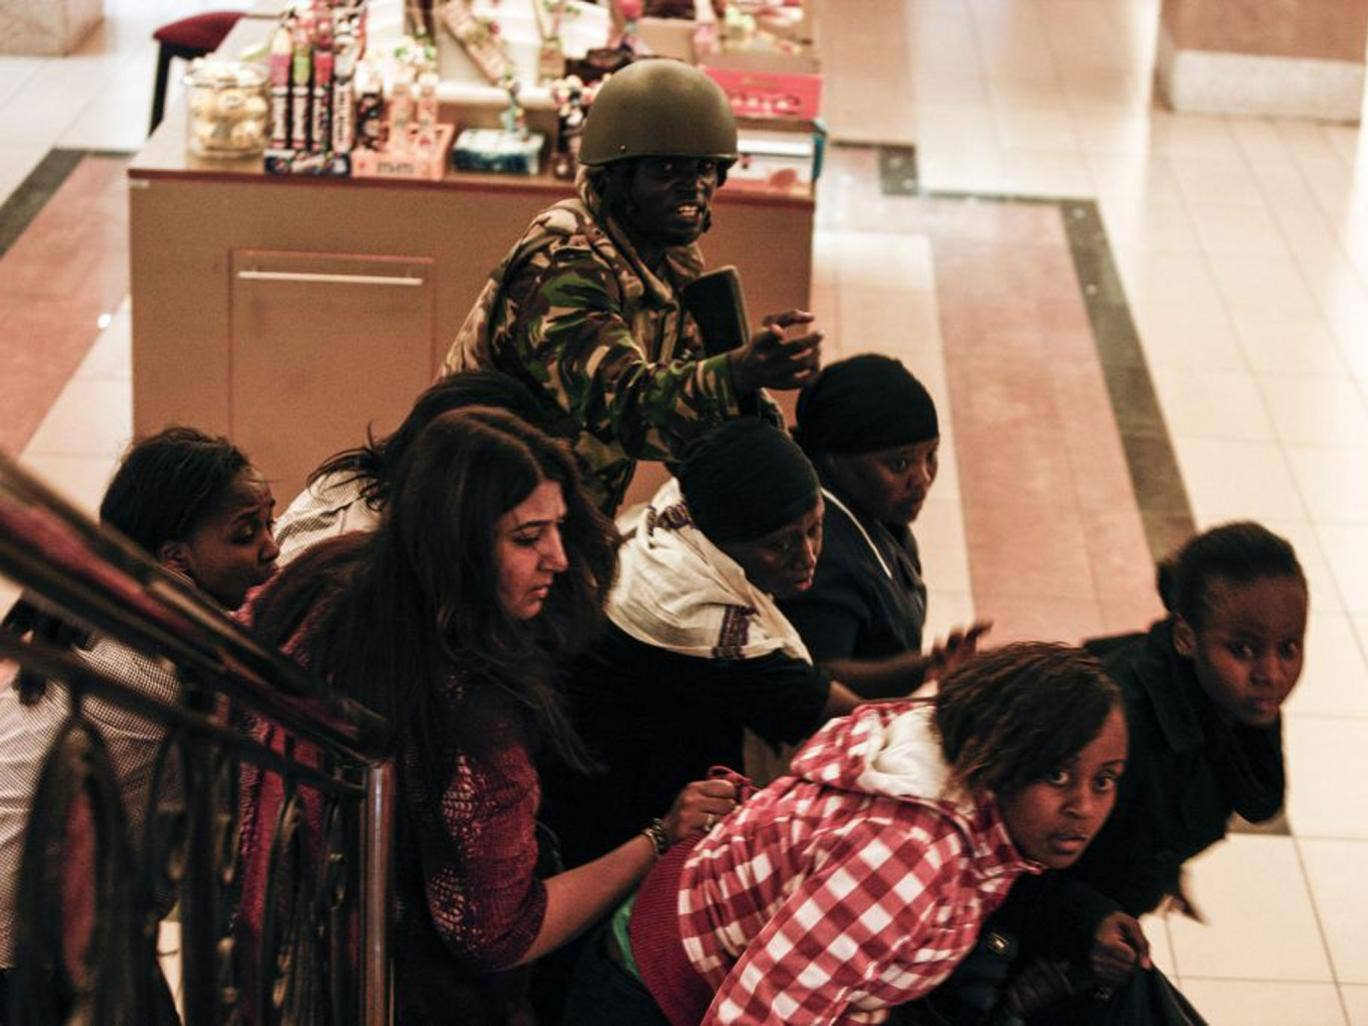 A soldier helps people inside Westgate mall on Saturday